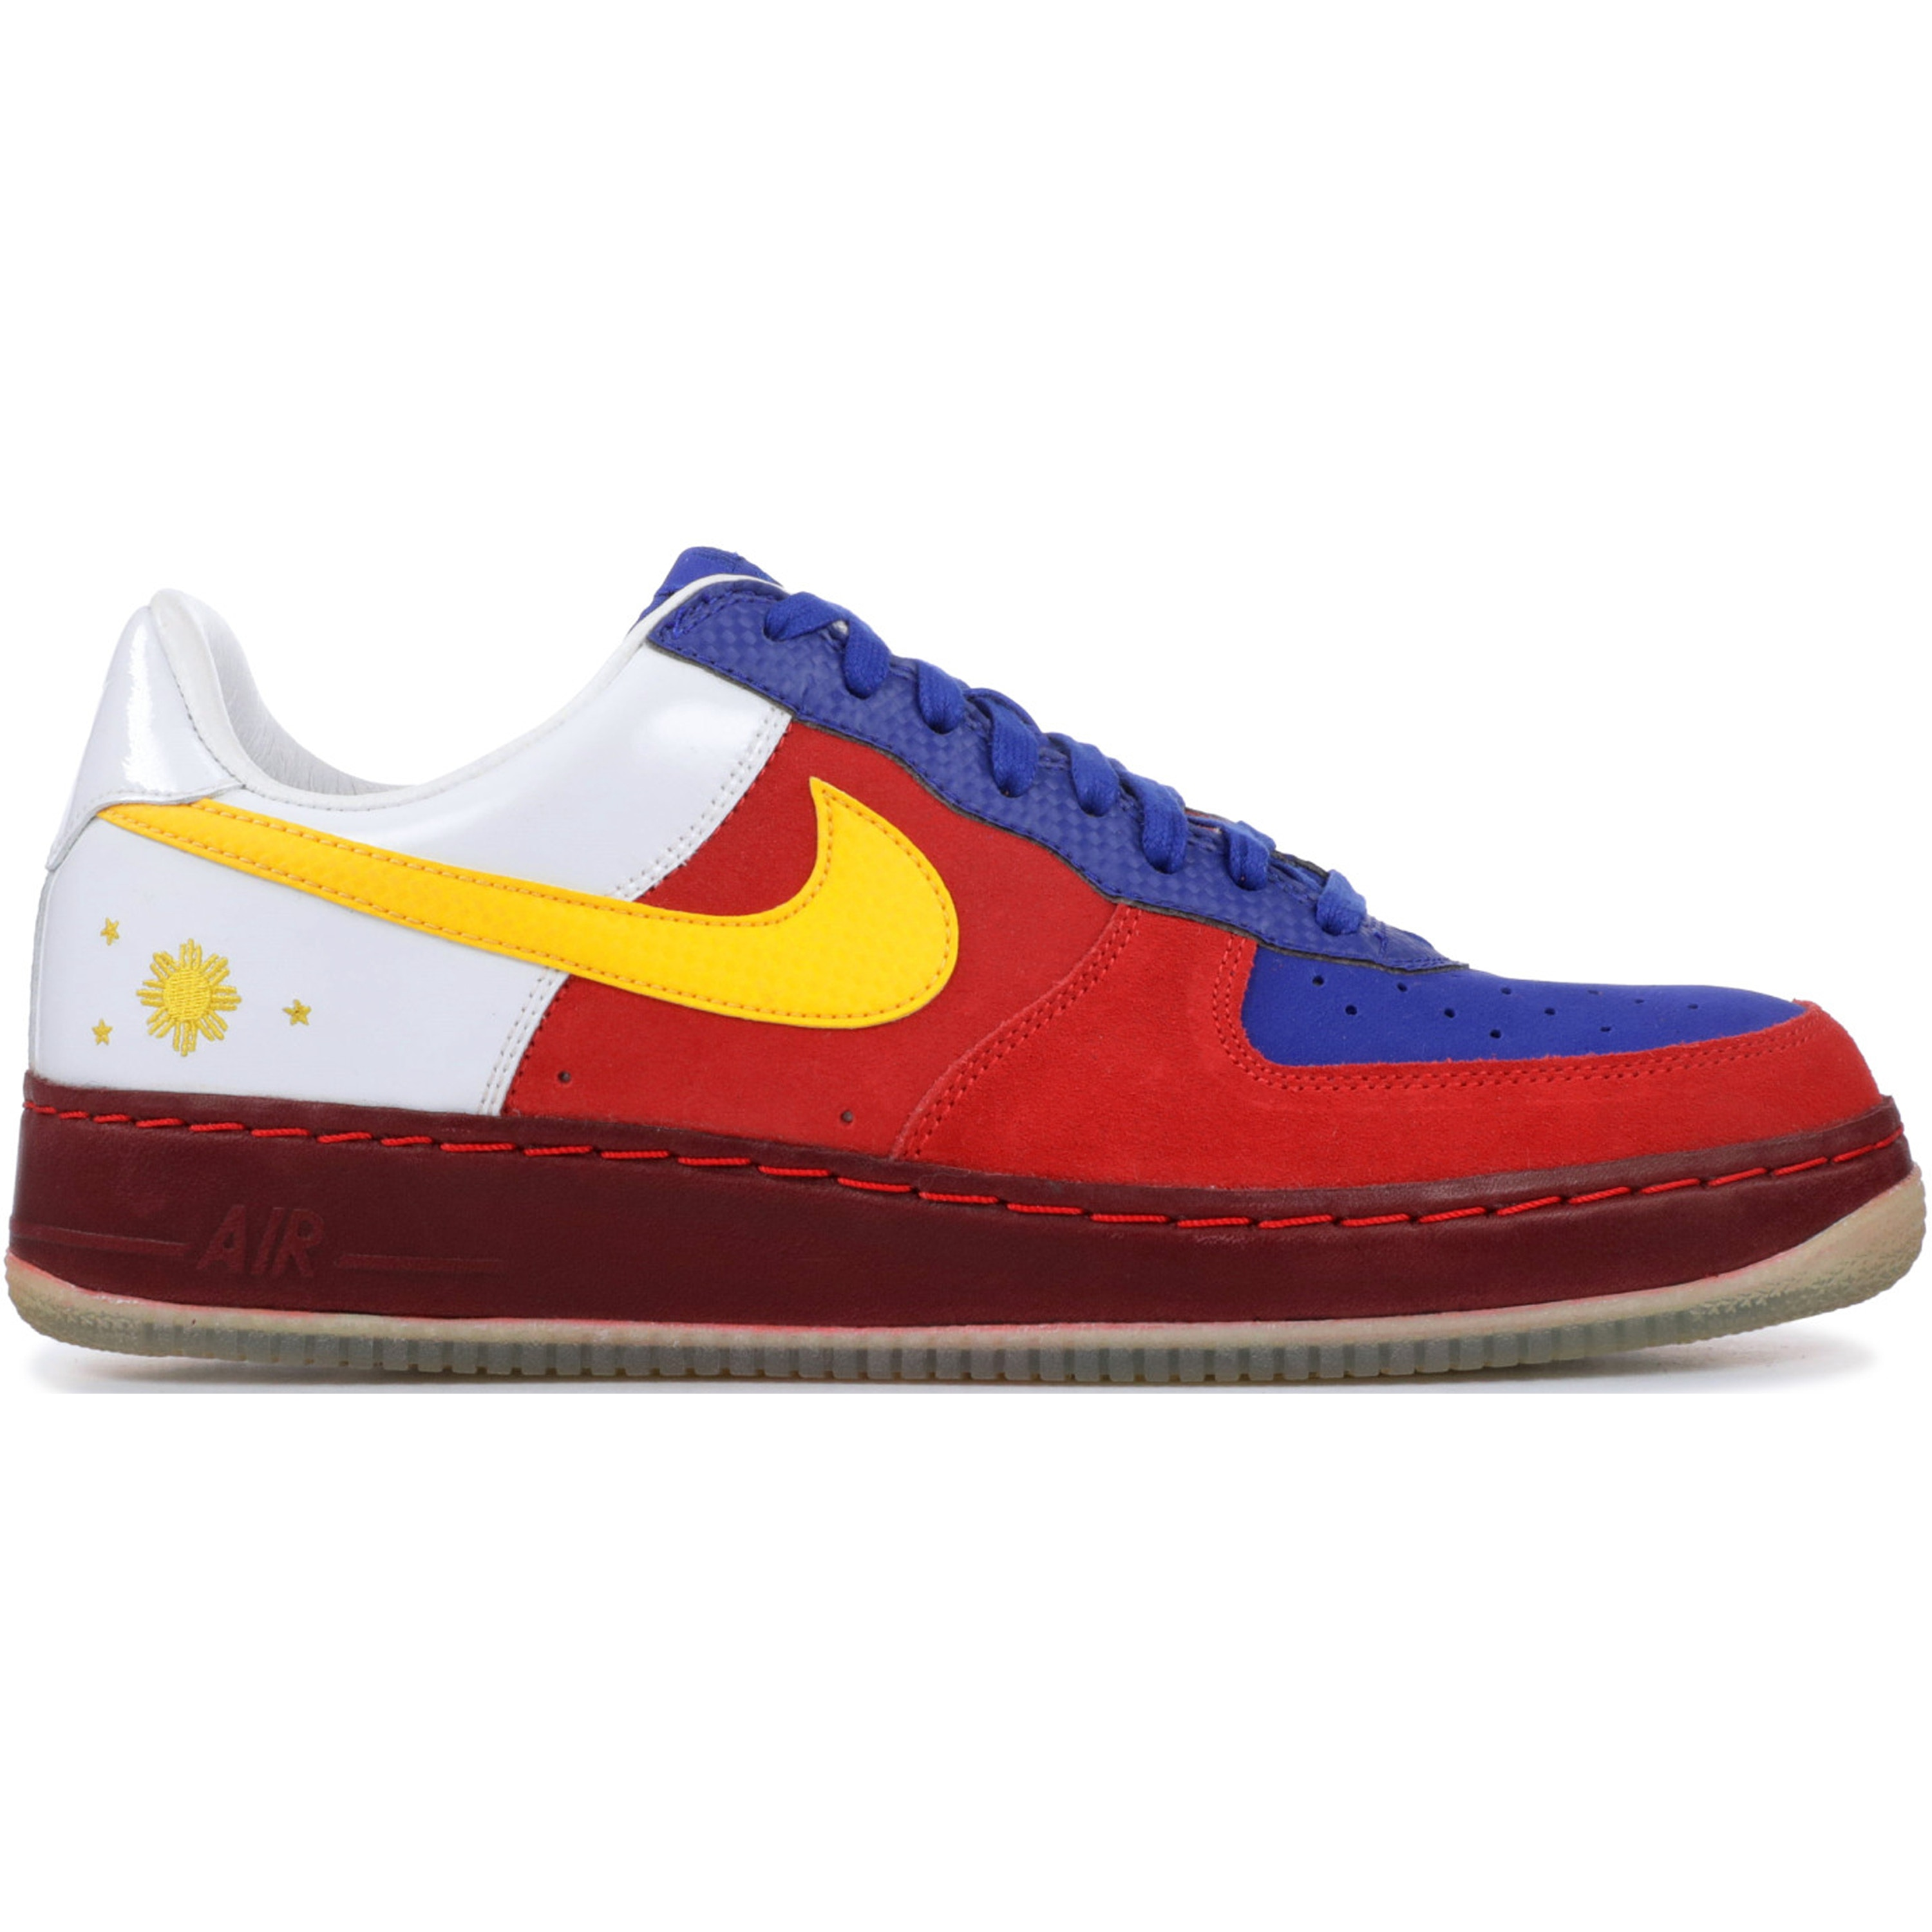 Nike Air Force 1 Insideout Philippines (314770-671)